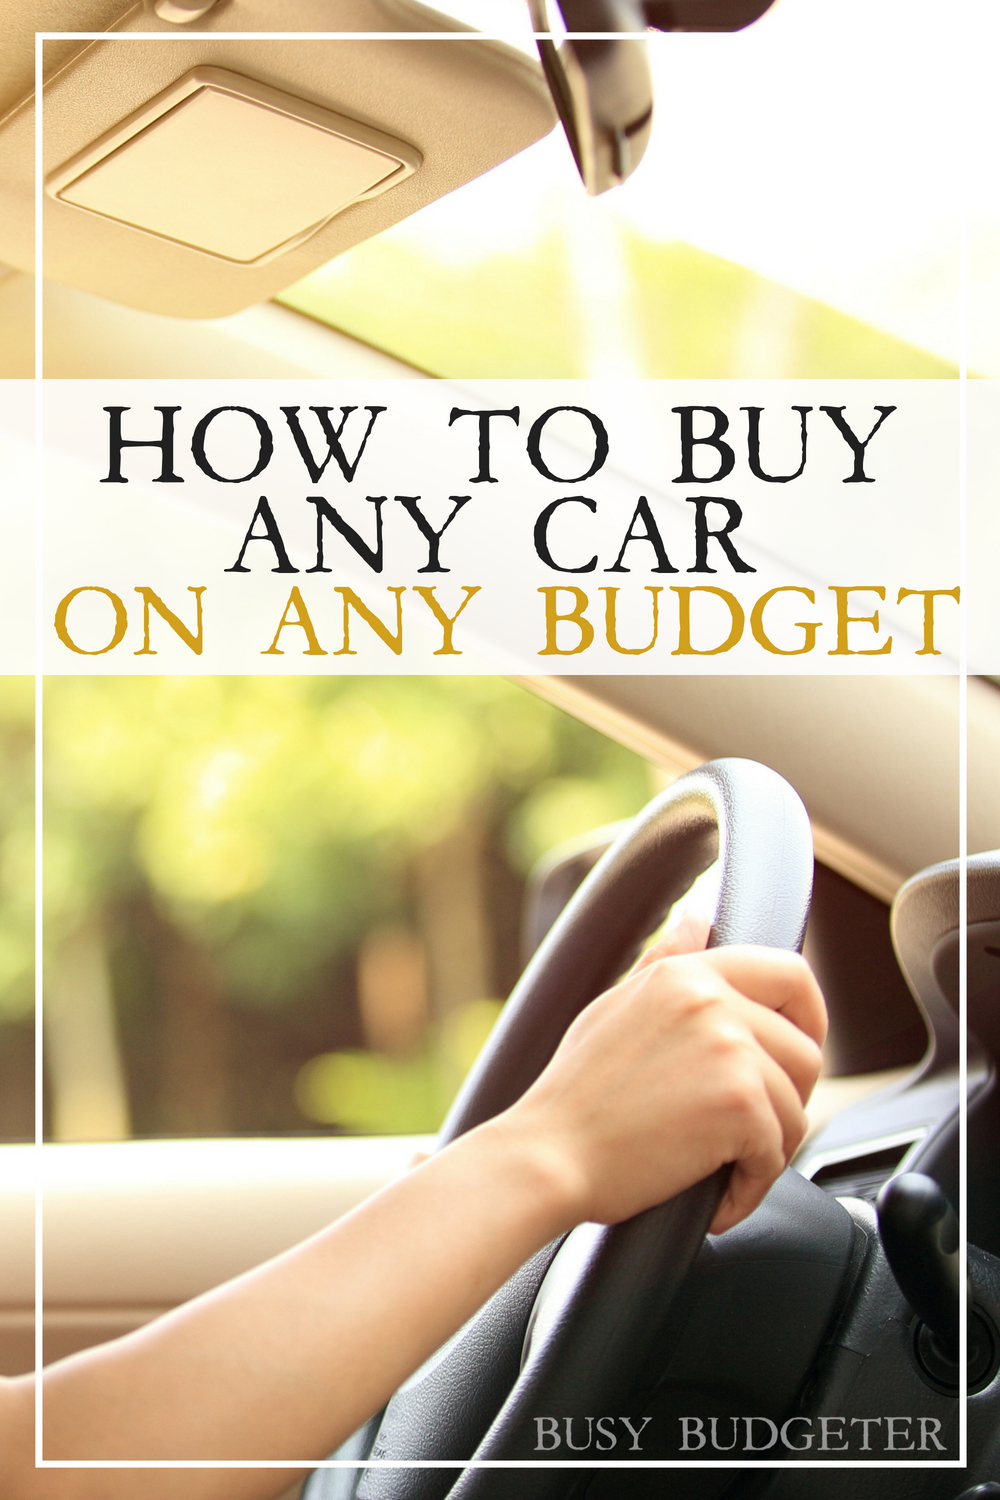 How to buy any car on any budget. This step-by-step guide is exactly what I needed! I saved a tin of money and for once, I actually felt like I knew what I was doing!